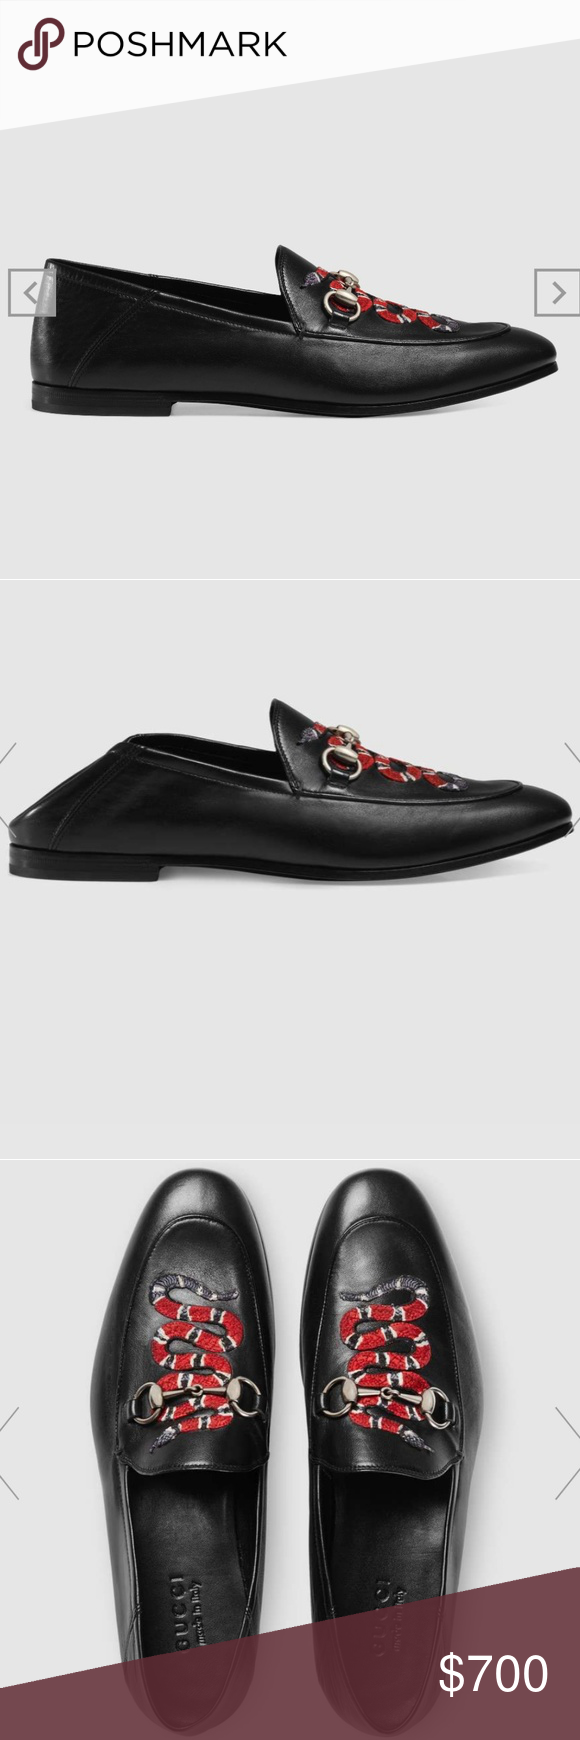 e839ad4e Gucci Leather Loaf with Kingsnake fits 9.5 10 The Kingsnake emerges as one  of Alessandro Michele's signature details, adding an eclectic and  unexpected ...